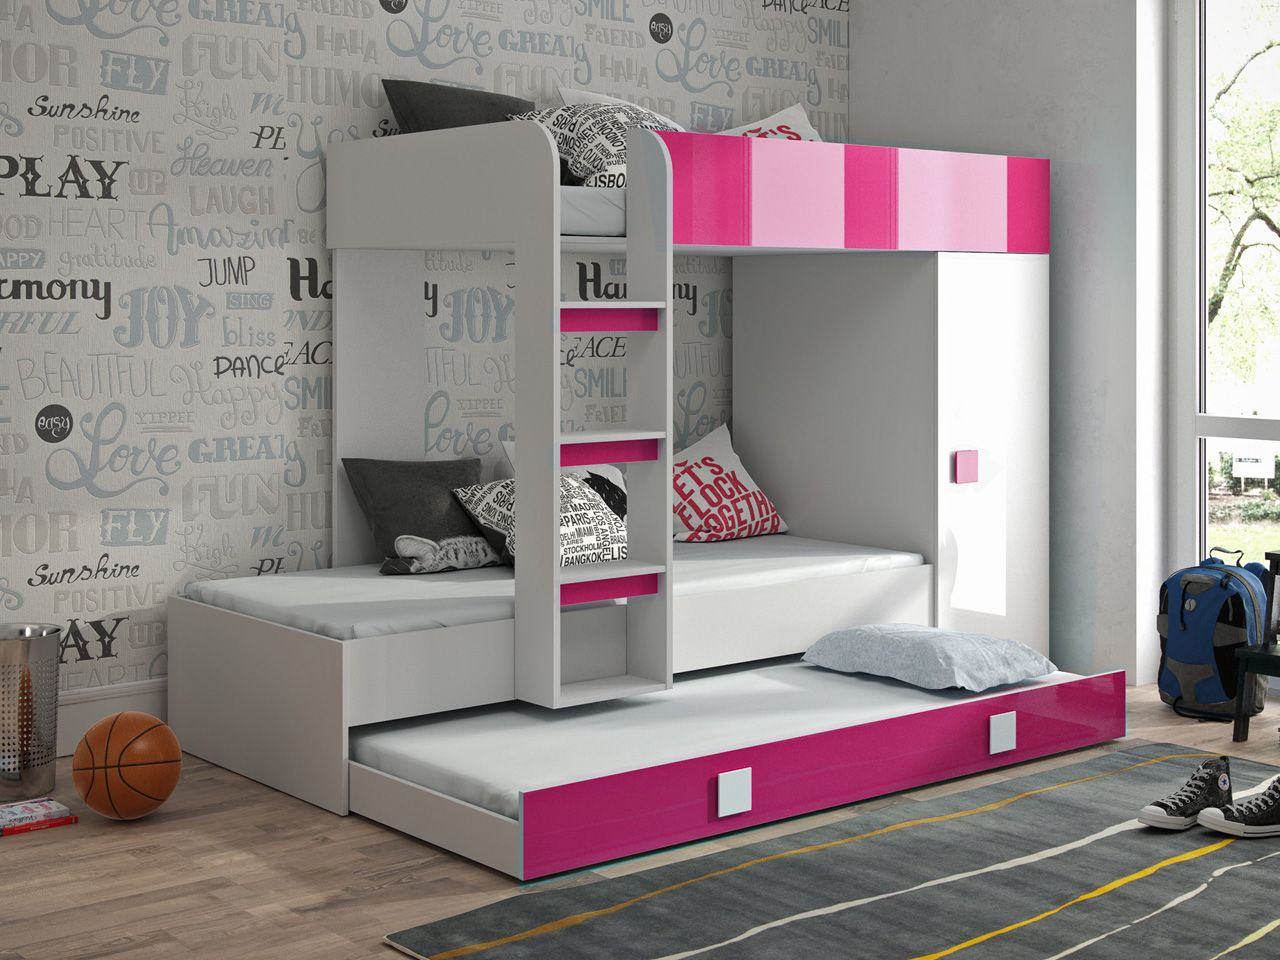 Lit Superpose Tomorrow 90x200 Cm Blanc Rose Brillant Avec Armoire A Droite Lit Superpose Etagere Lit Lit Superpose Bureau